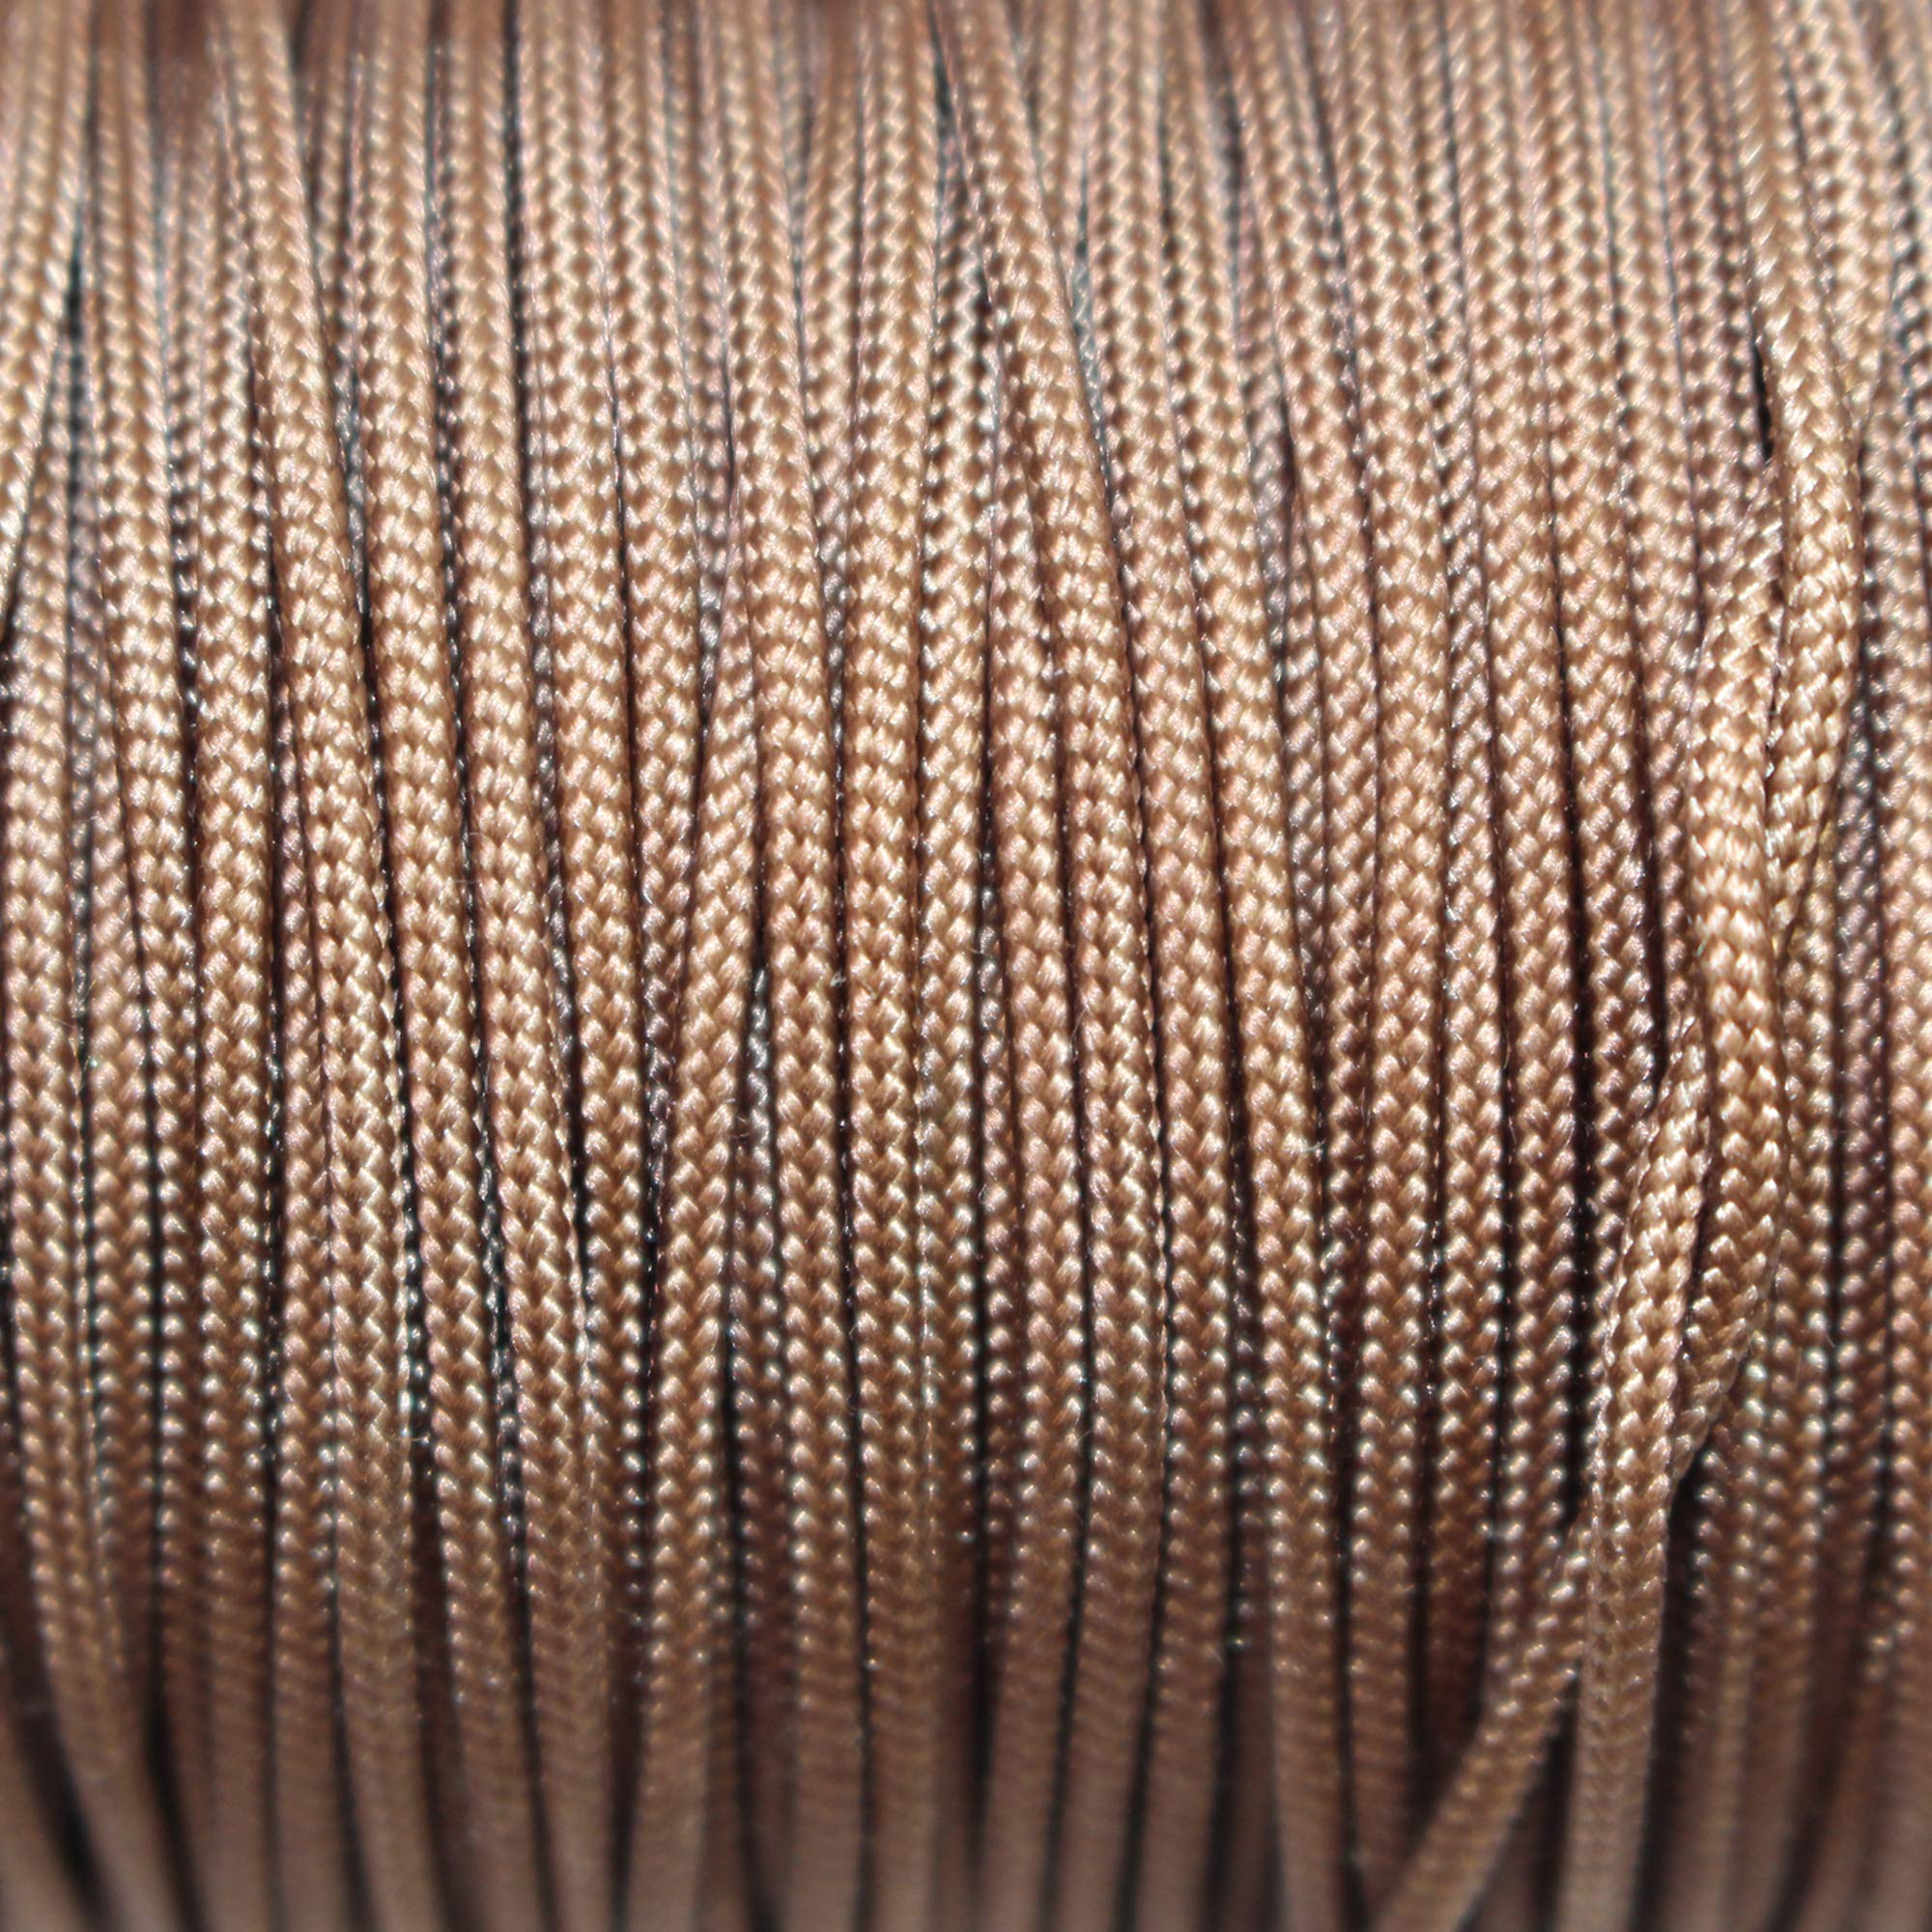 Mini Blind Cord (1.8 mm) - SGT KNOTS - Durable Polyester Lift Cord - Roman Shade Cord & Wind Chime Cord - Micro Cord/Nano Cord for Crafting, Home Decor, Repair & DIY Projects (100 Yards - Chocolate) by SGT KNOTS